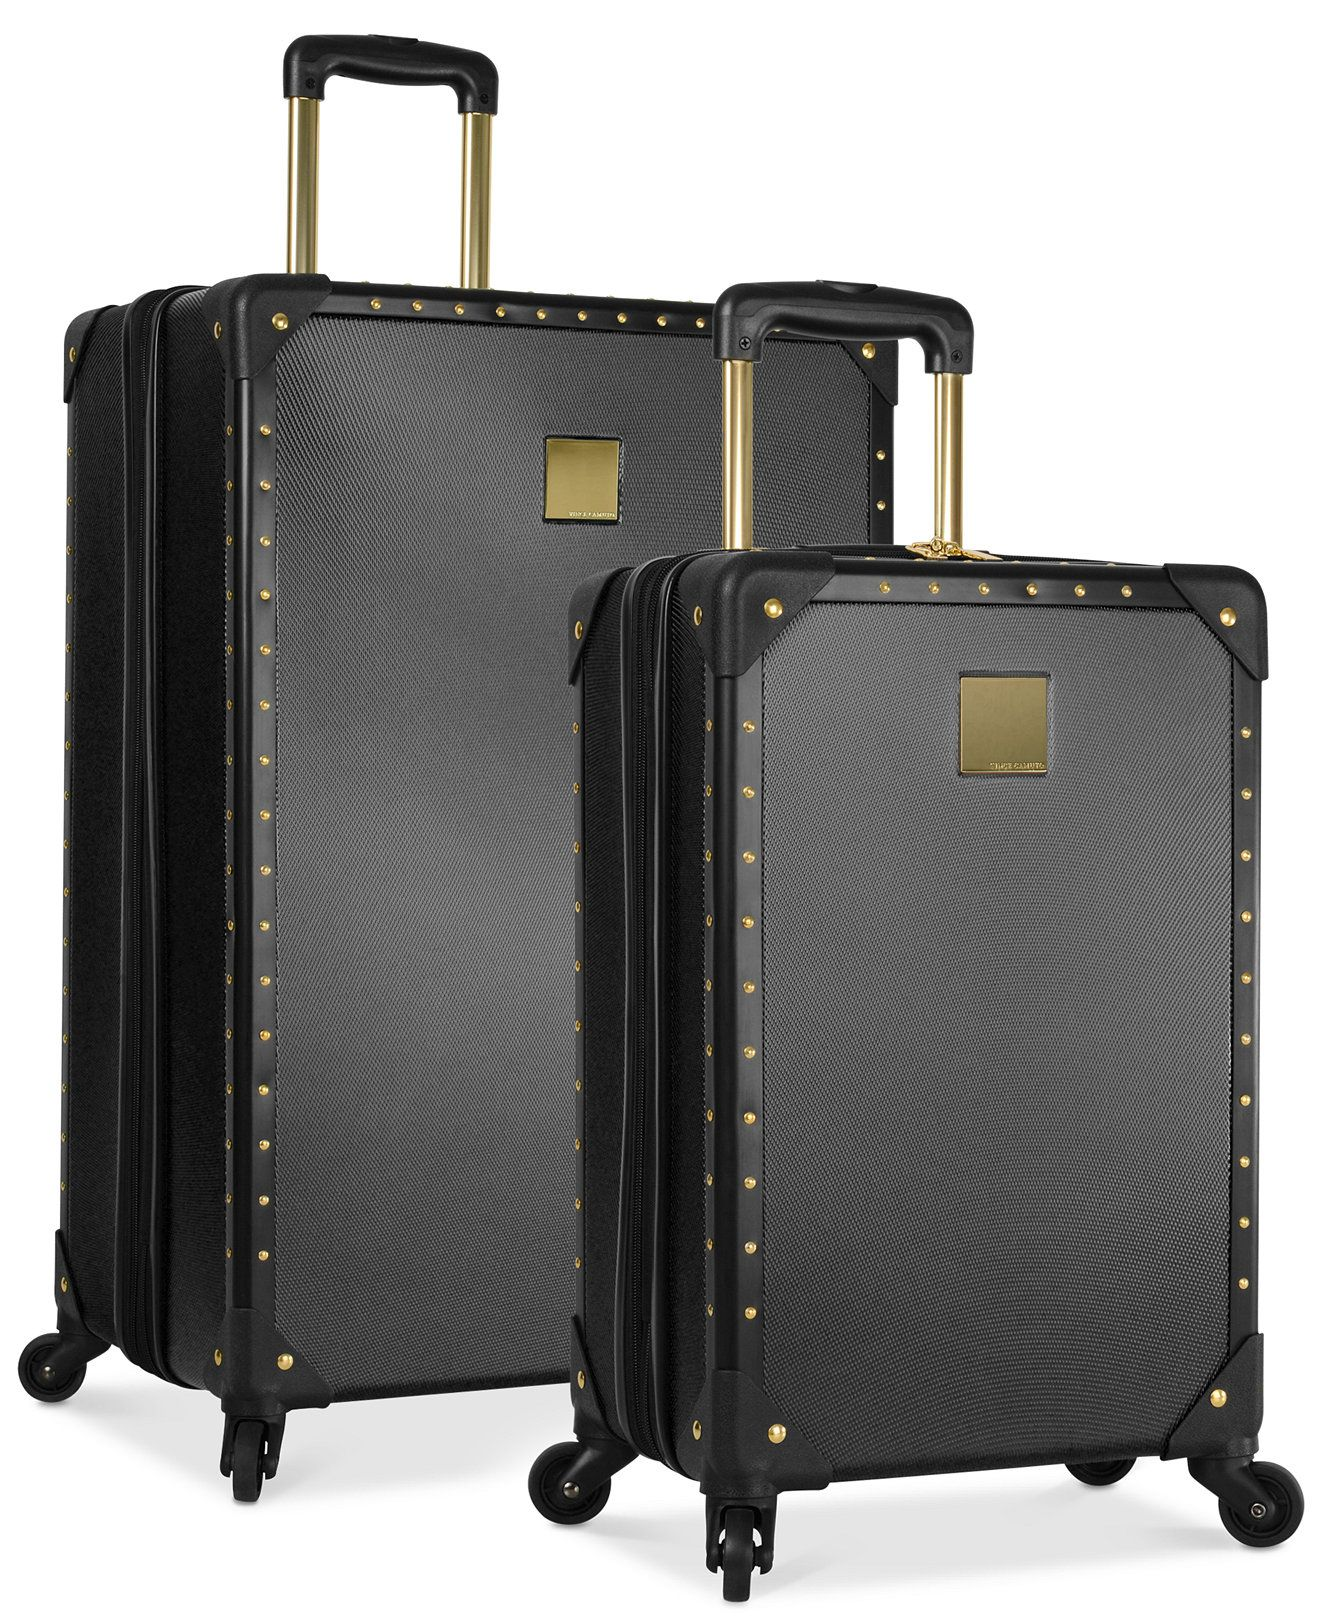 b0d0c6adb Vince Camuto Loma Hardside Spinner Luggage - Luggage Collections - Macy's